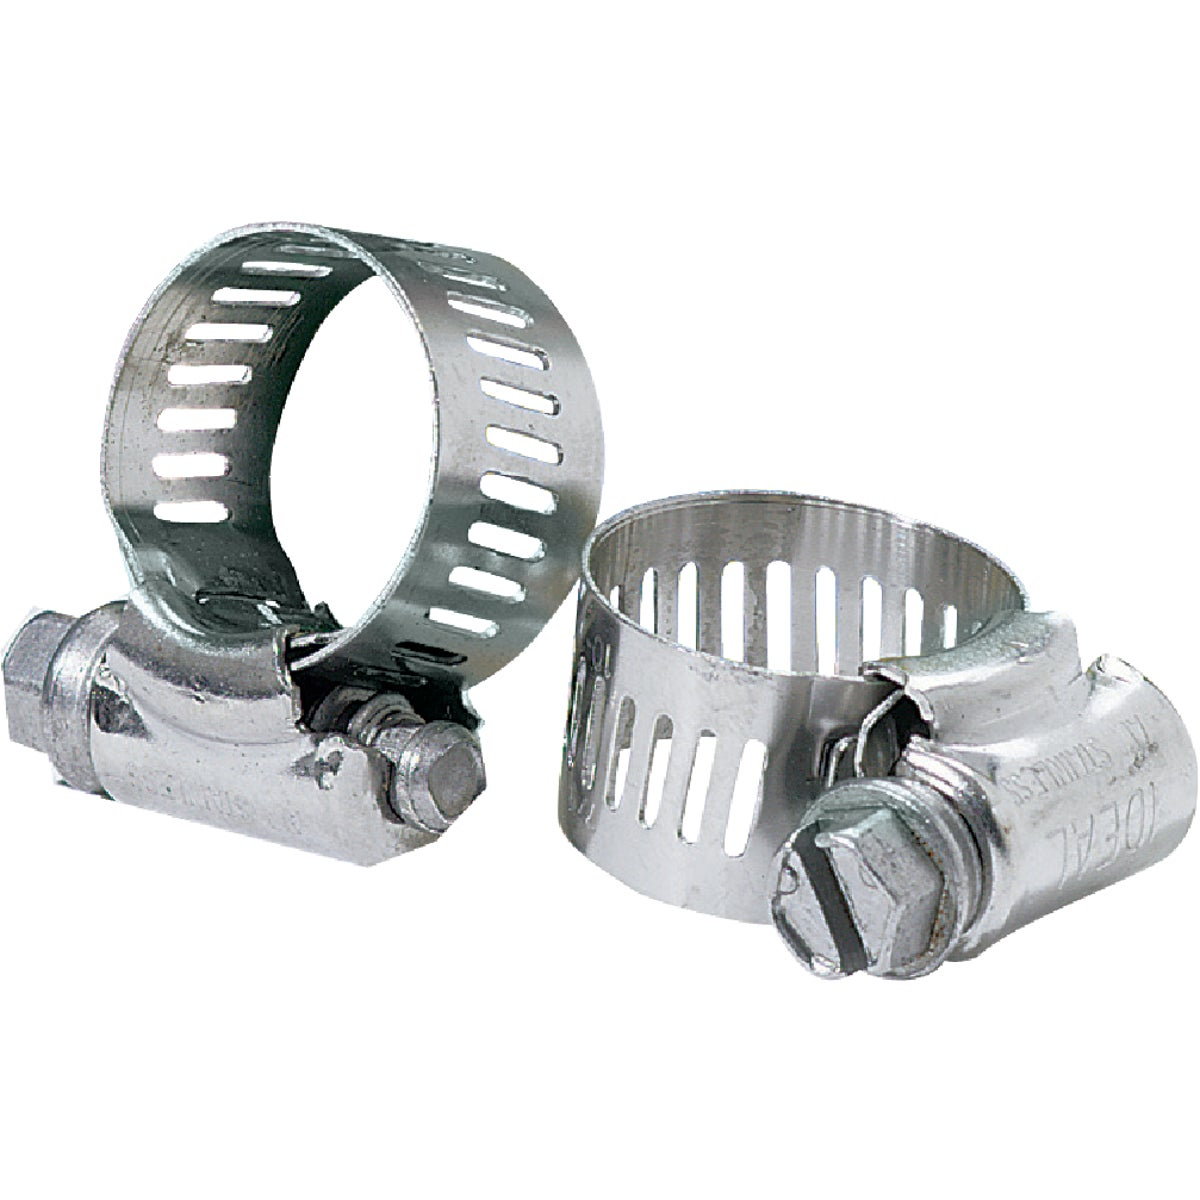 "3-1/2"" - 5-1/2"" CLAMP"